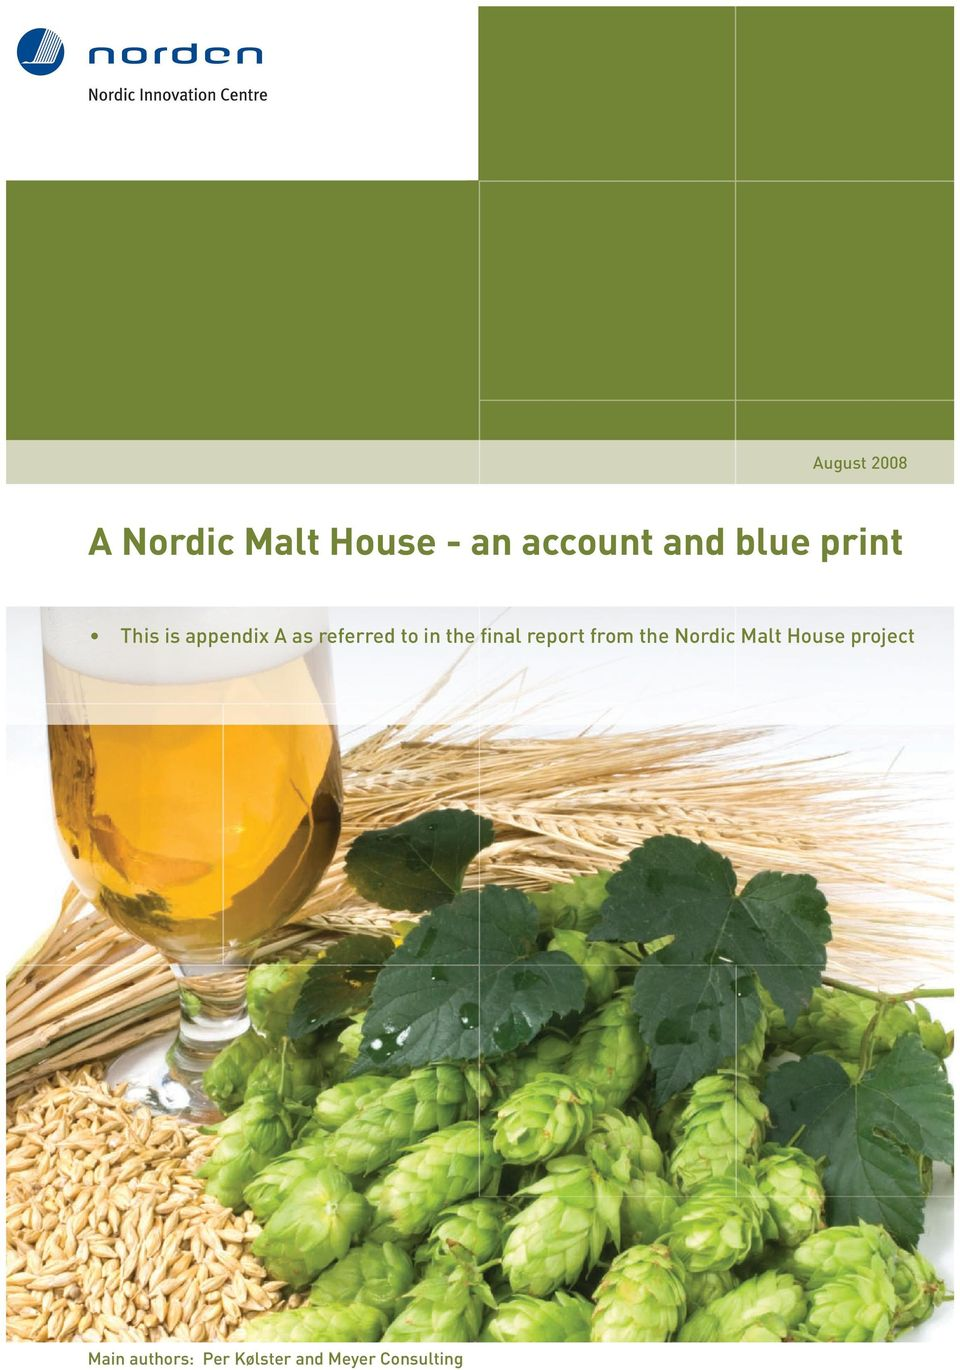 the final report from the Nordic Malt House